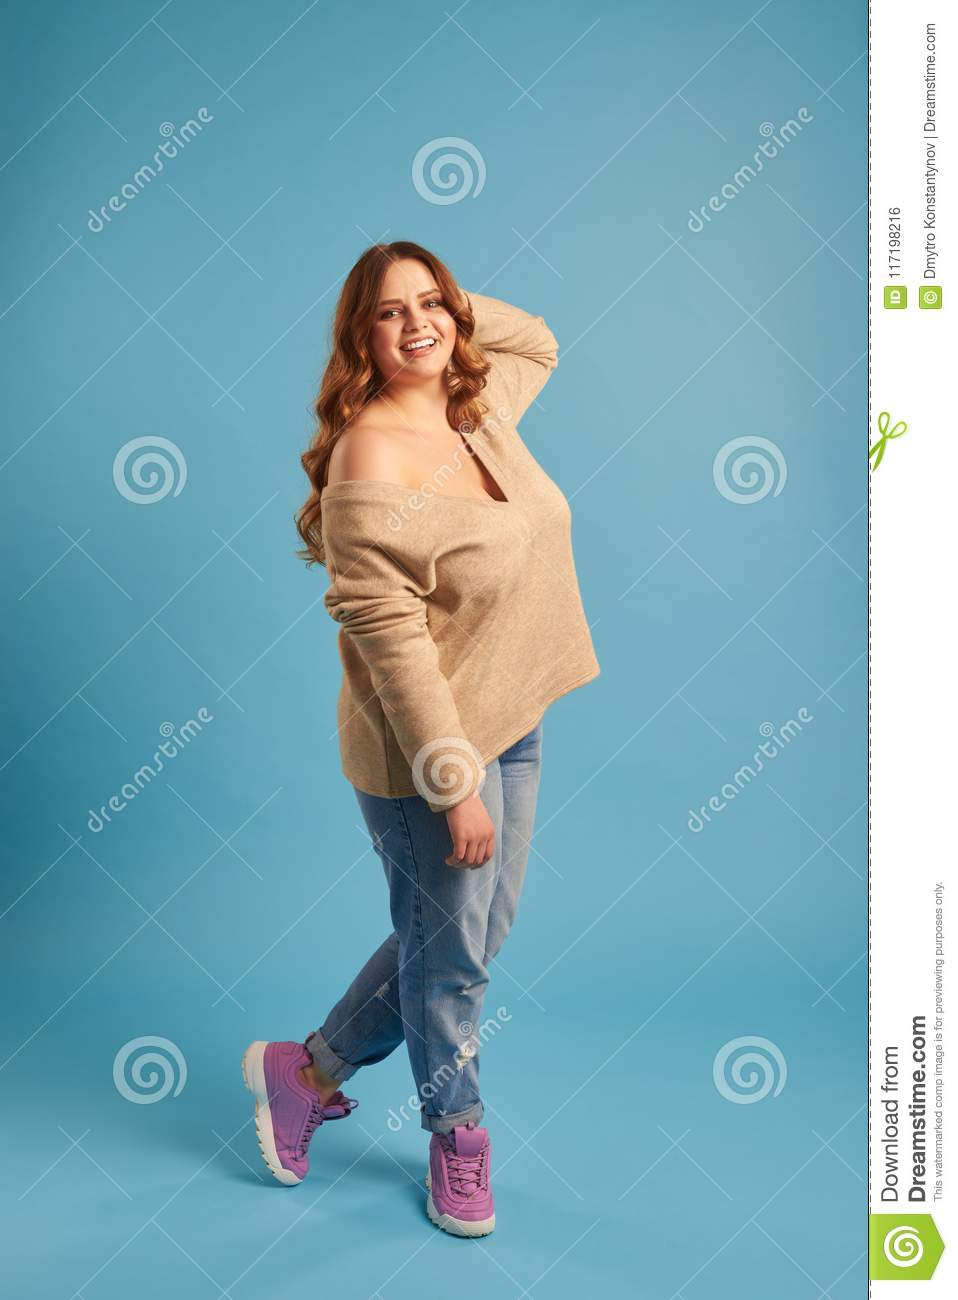 Candid young plus-size girl posing against blue background